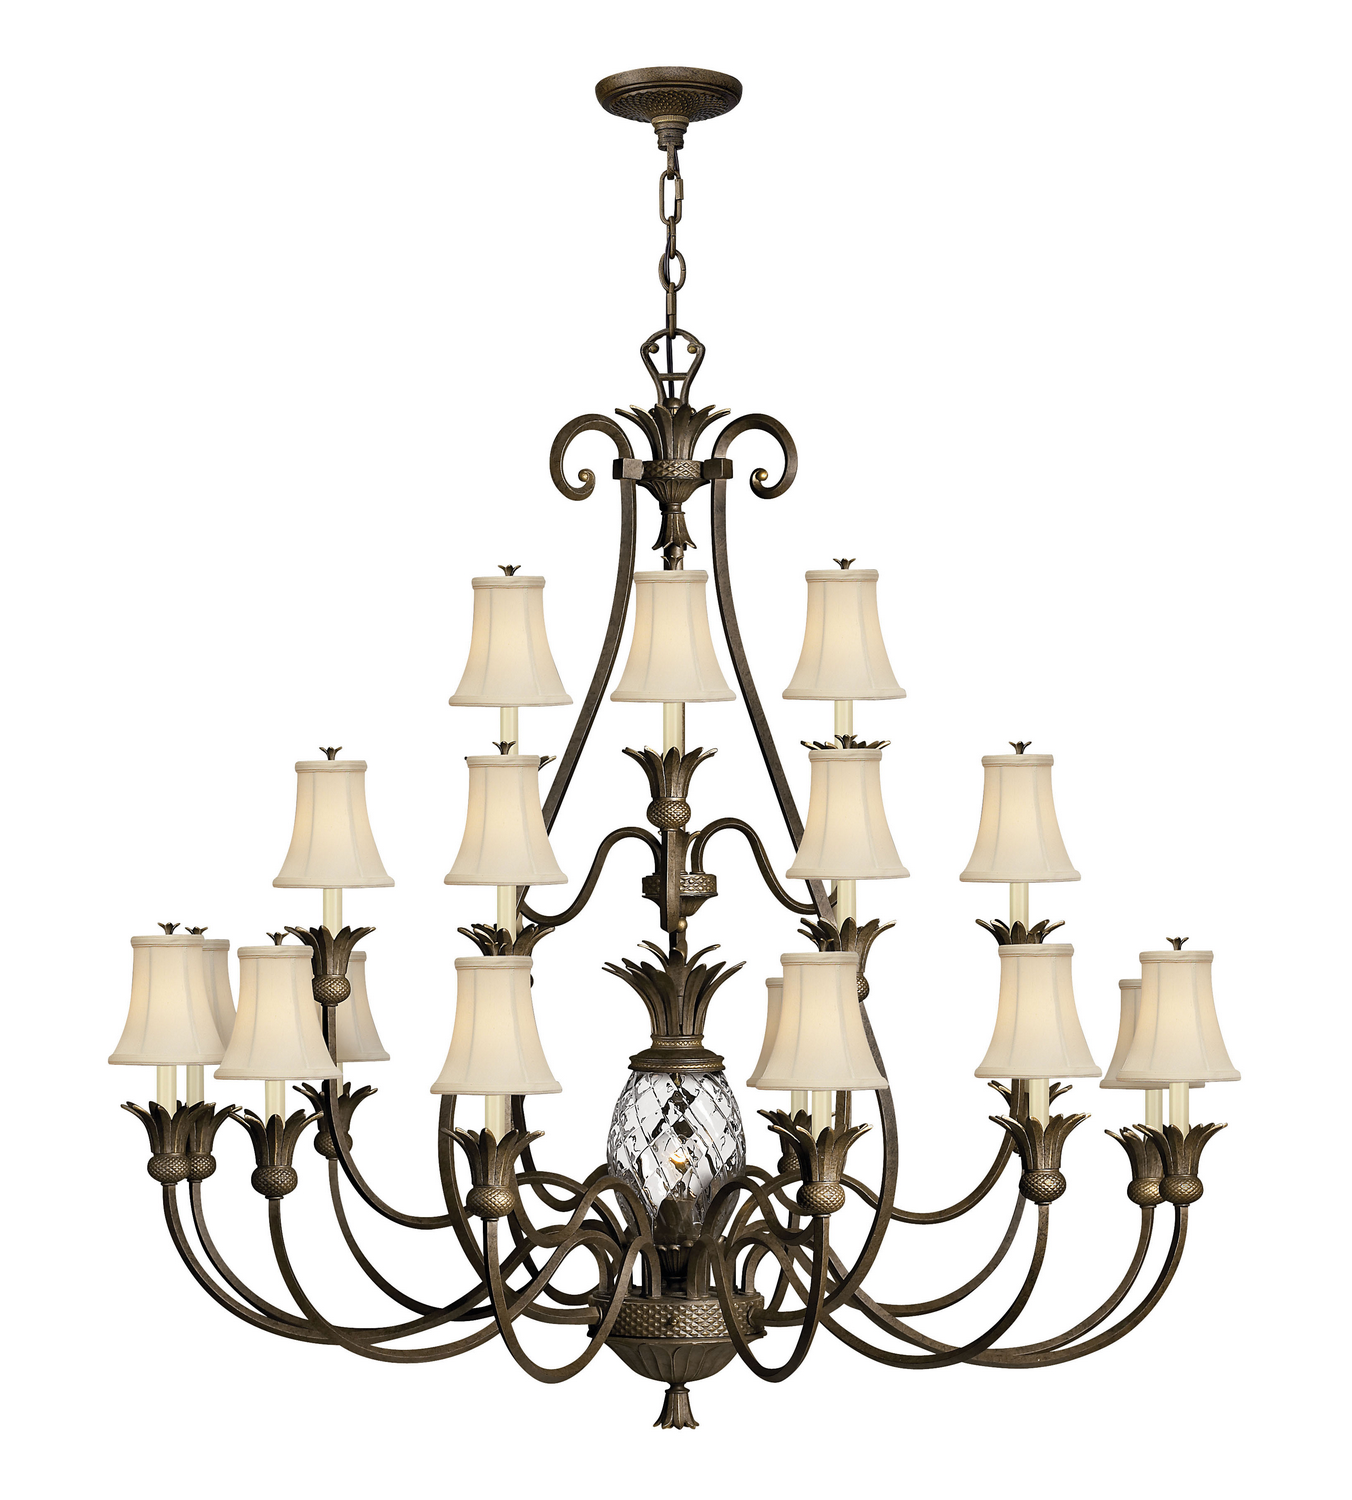 22 Light Foyer Pendant from the Plantation collection by Hinkley 4889PZ